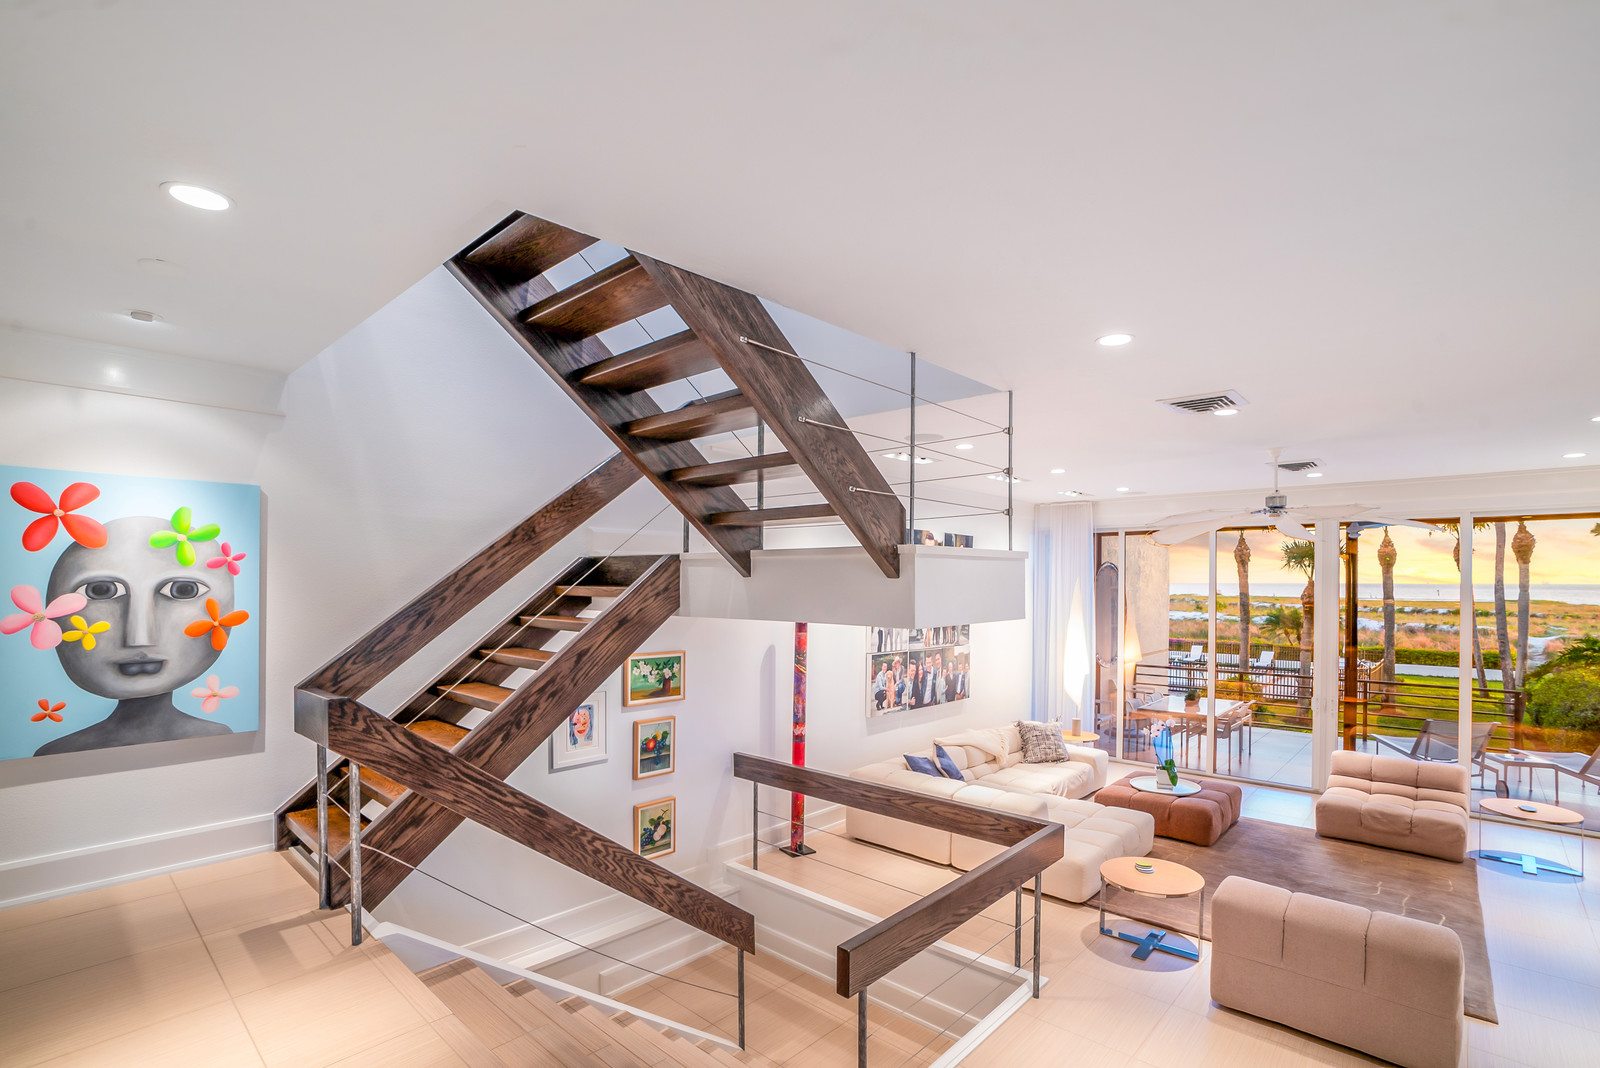 An amazing open floor plan allows the view to be enjoyed from all living spaces. Contemporary details like the wood-and-cable staircase keep the space interesting while allowing the eye to ultimately draw right to the sunset through the frame of the wide, full-height sliders.